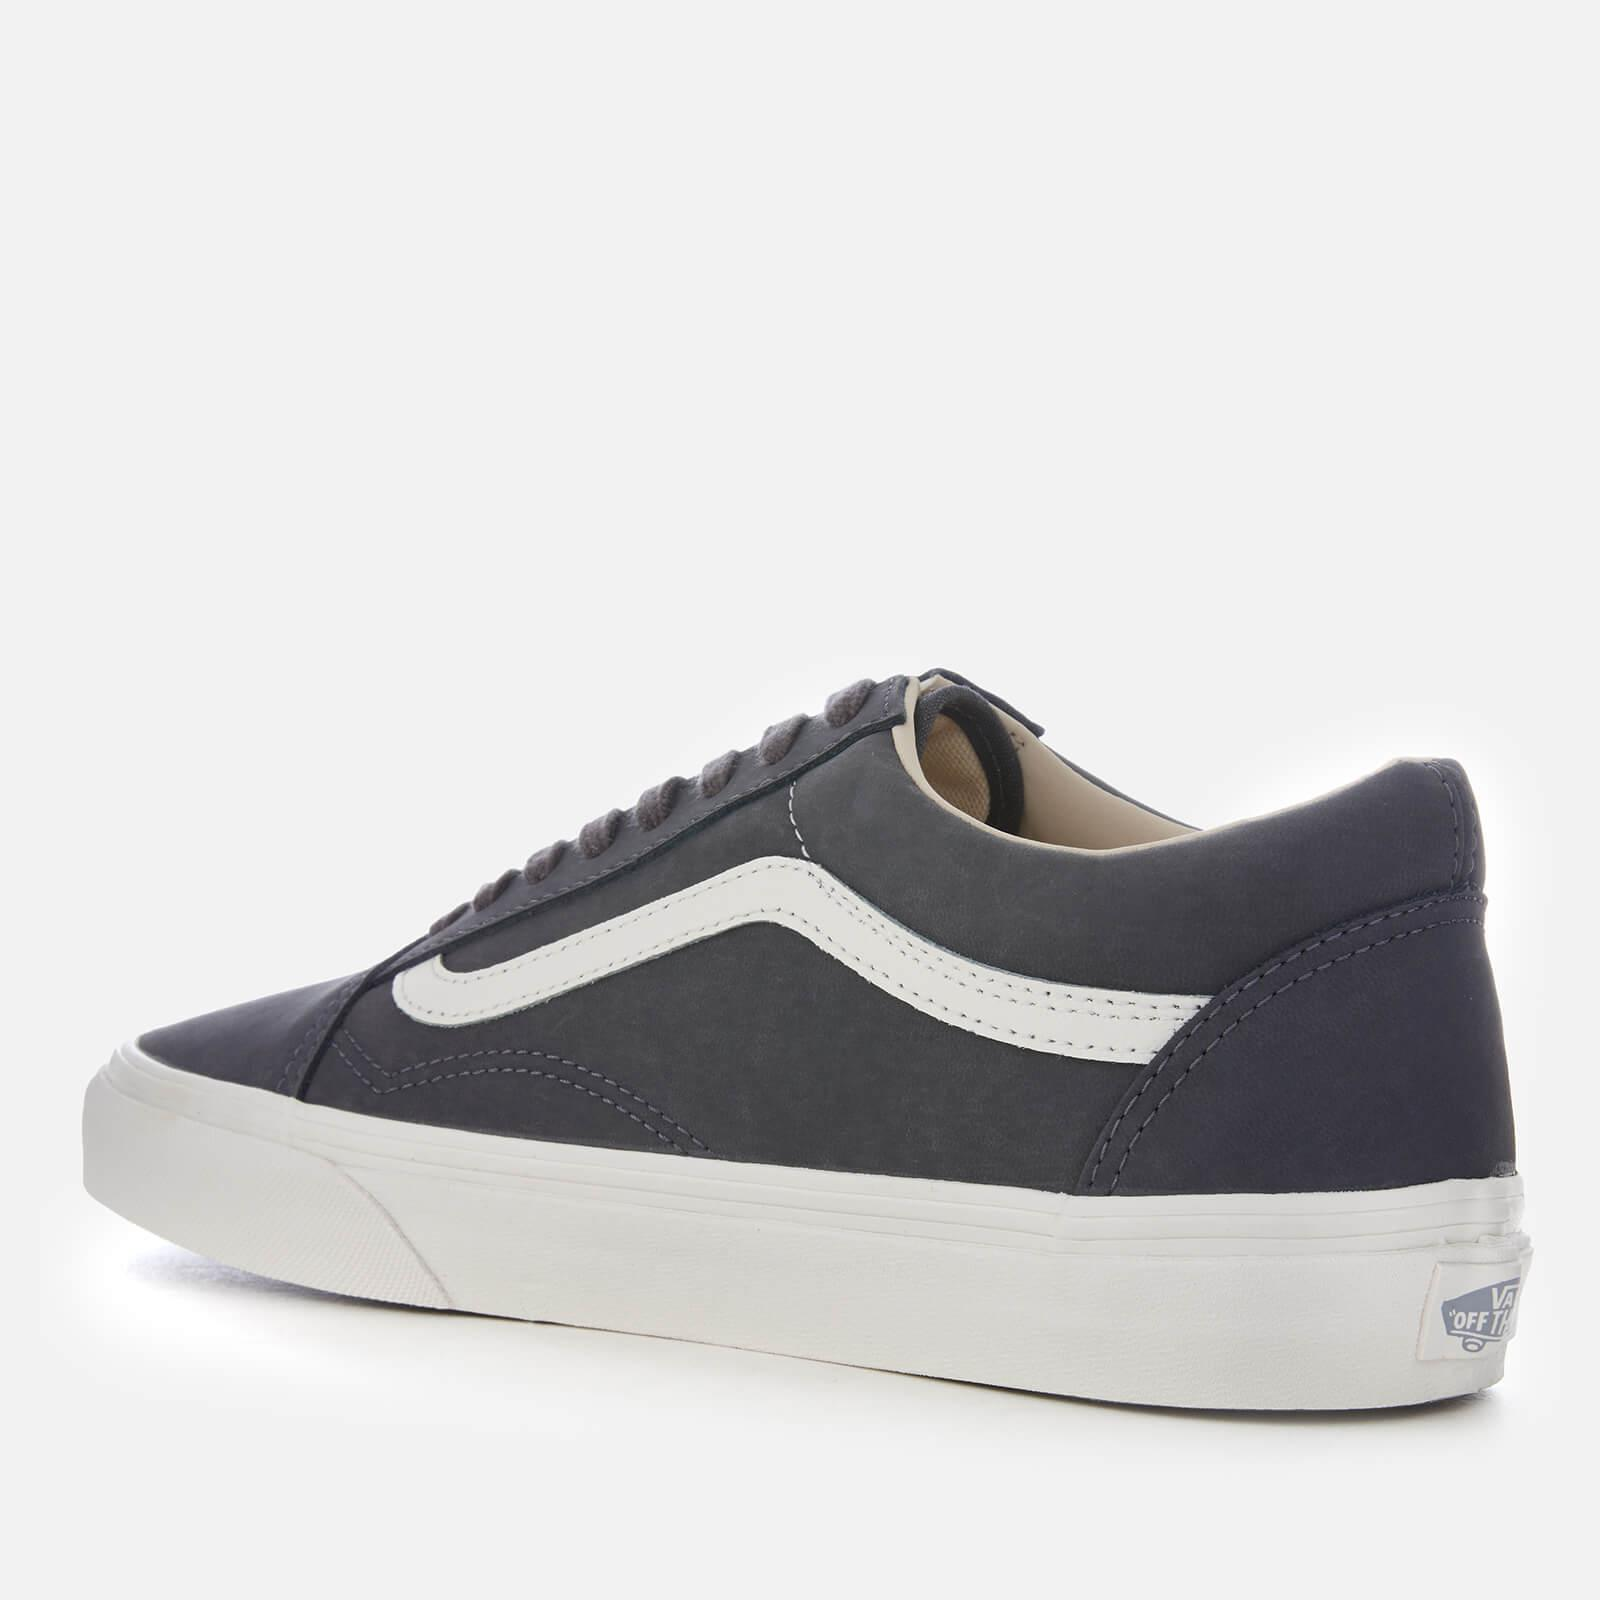 e9c15eba60 Lyst - Vans Old Skool Buck Trainers in Gray for Men - Save 37%